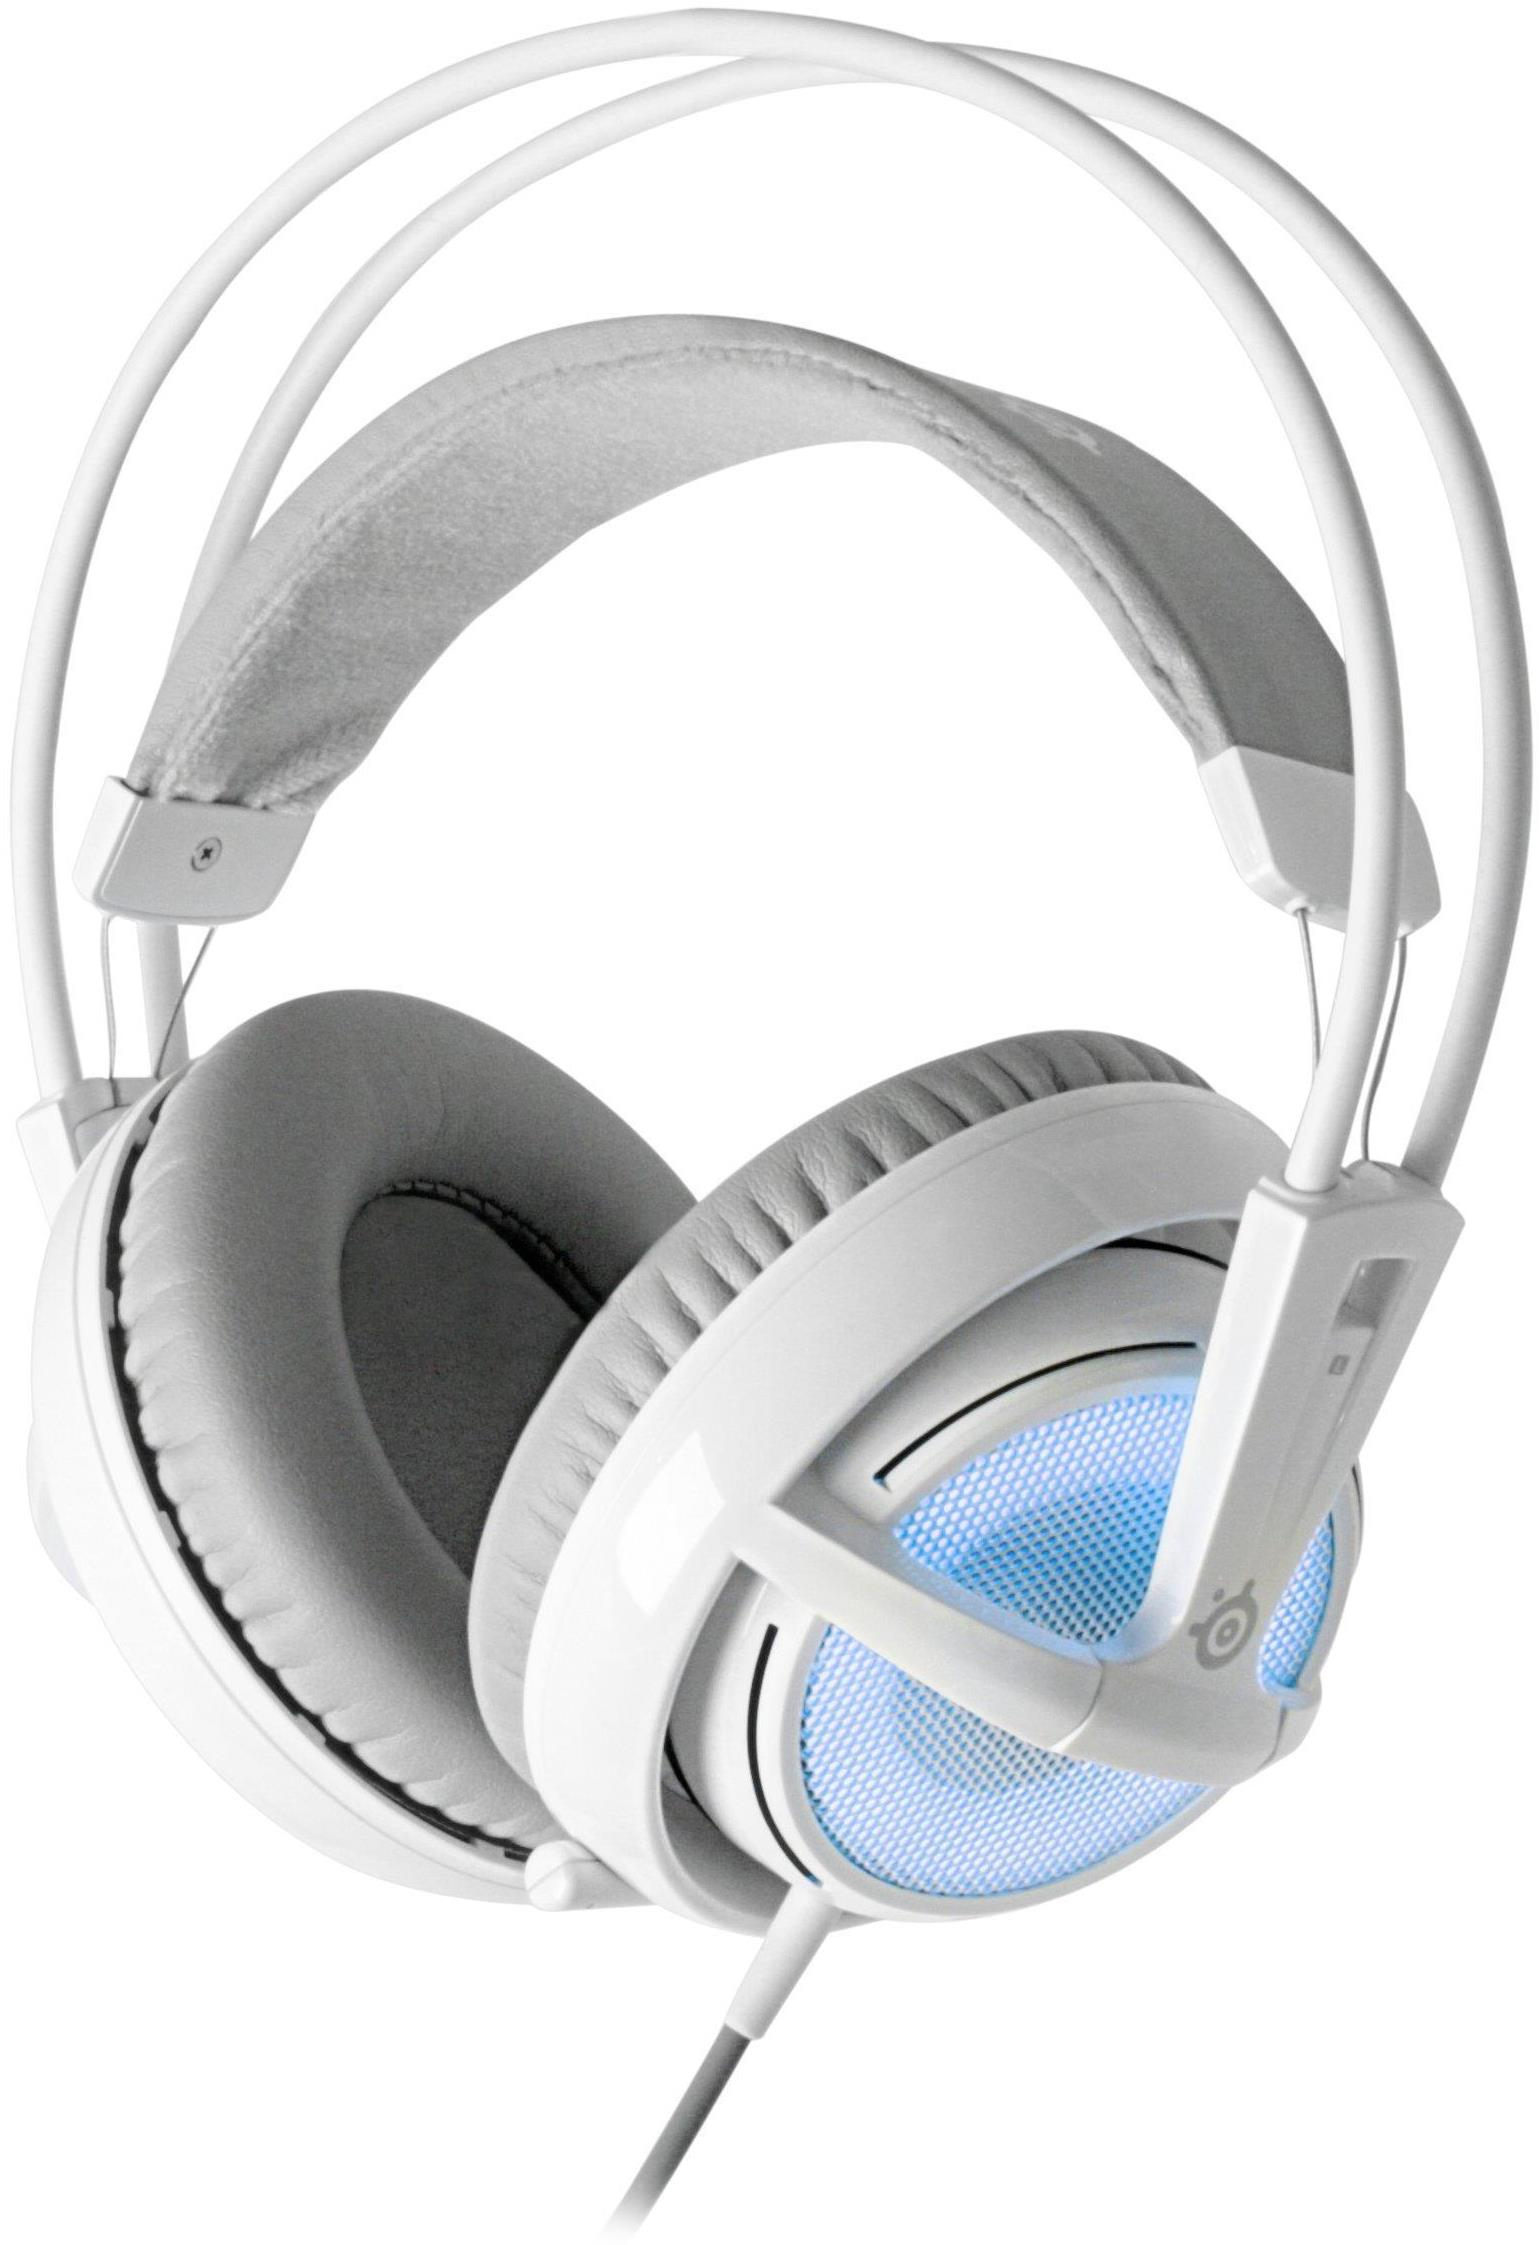 Steelseries Siberia V2 Frost Blue Edition USB Headset for PC & Mac